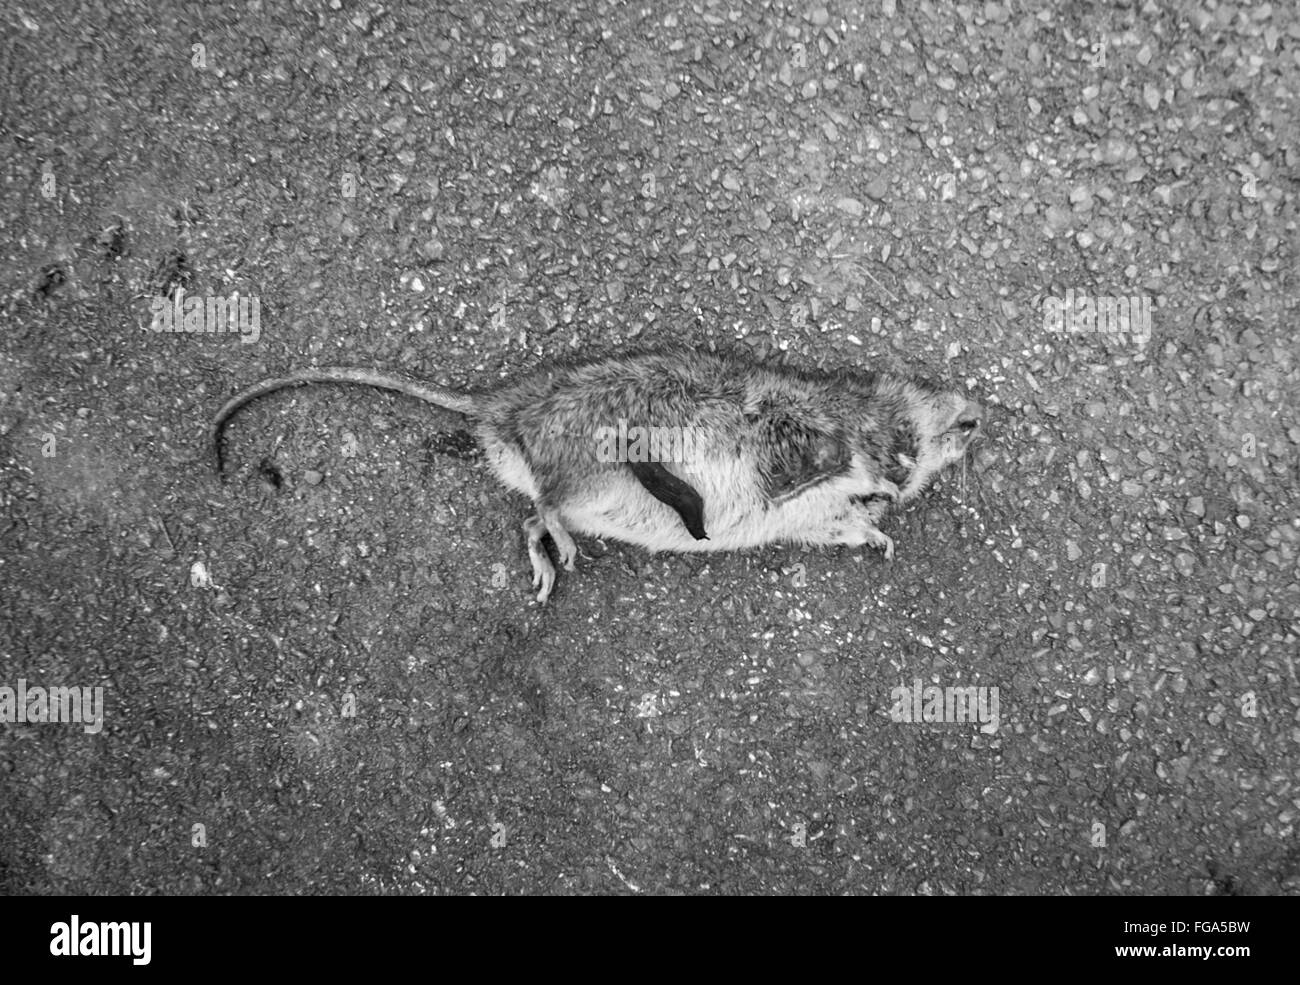 High Angle View Of Dead Rat On Street - Stock Image